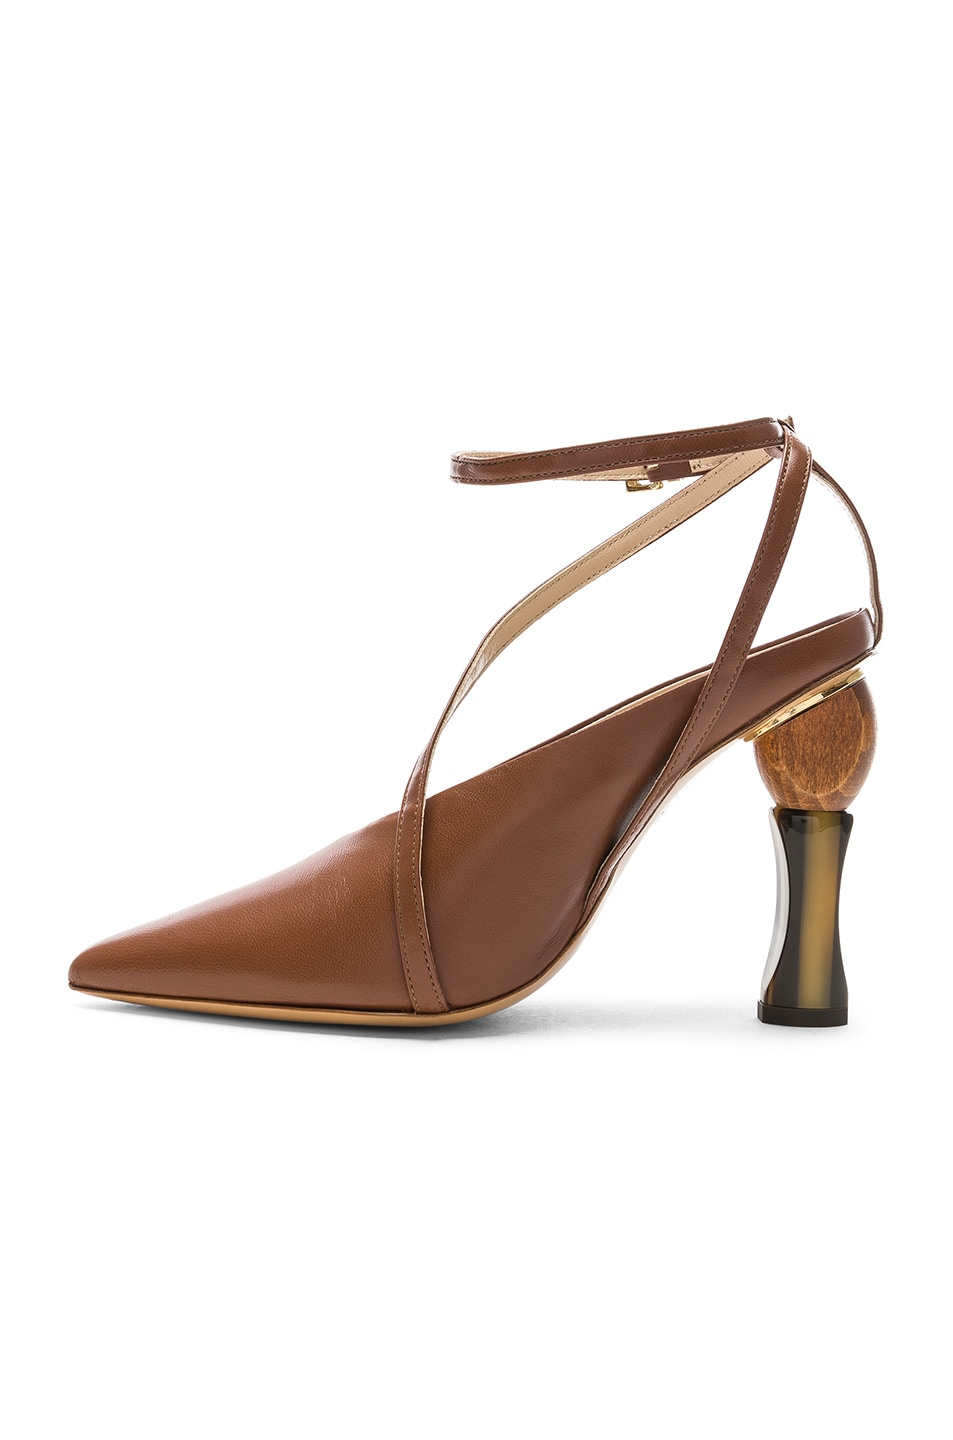 JACQUEMUS Leather Faya Heels Brown Leather durable service